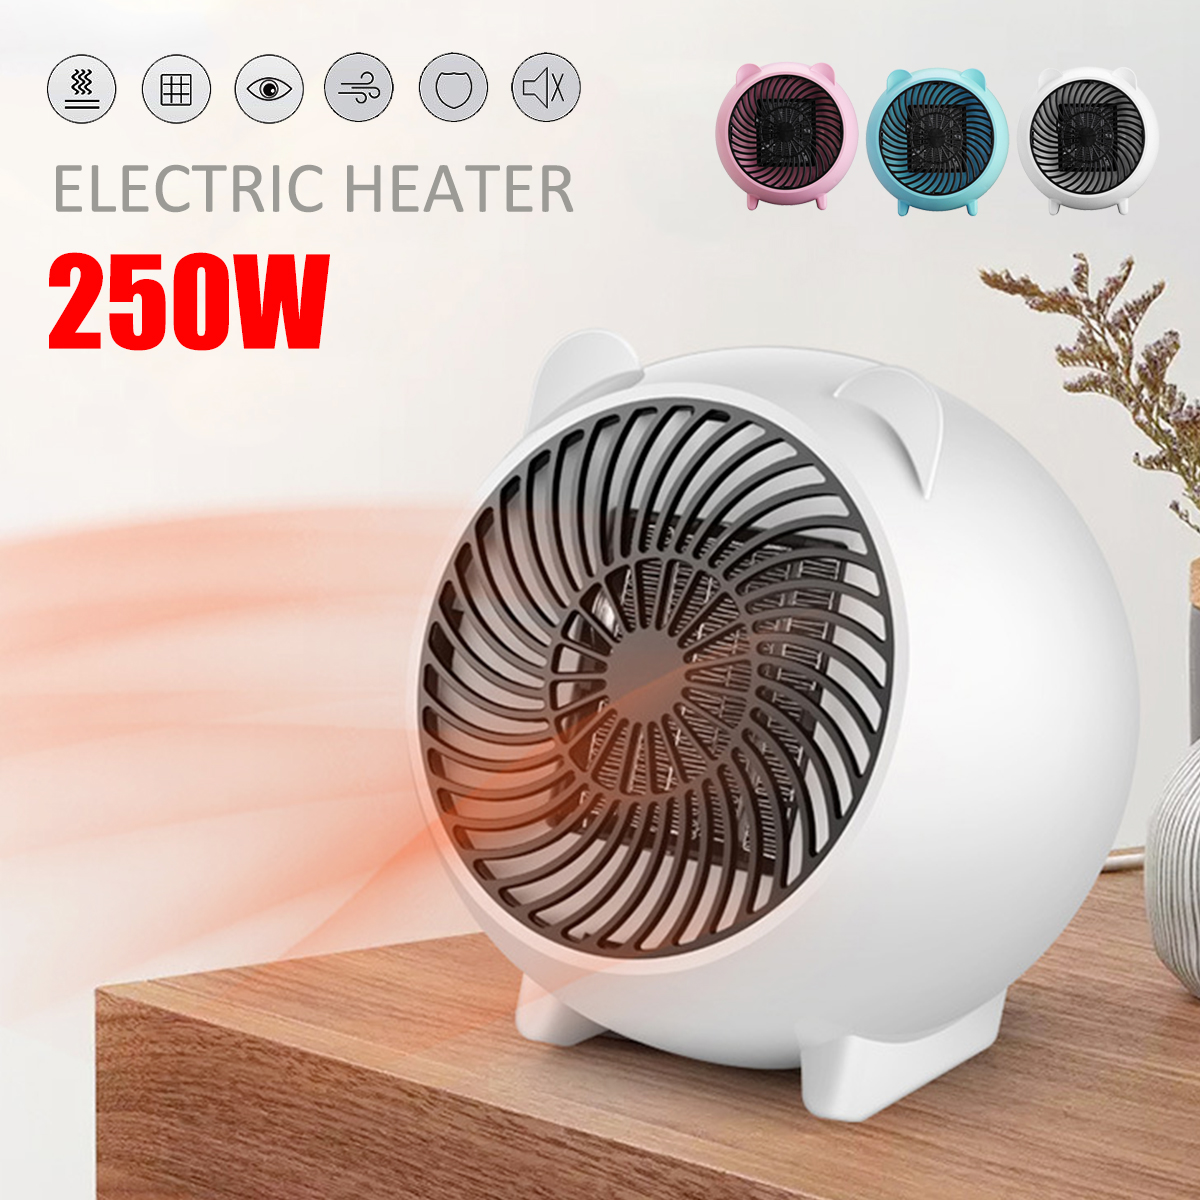 250W 10㎡ Intelligent Mini Space Electric Heater Heating Fan Warmer Home Desktop Intelligent temperature control Safety